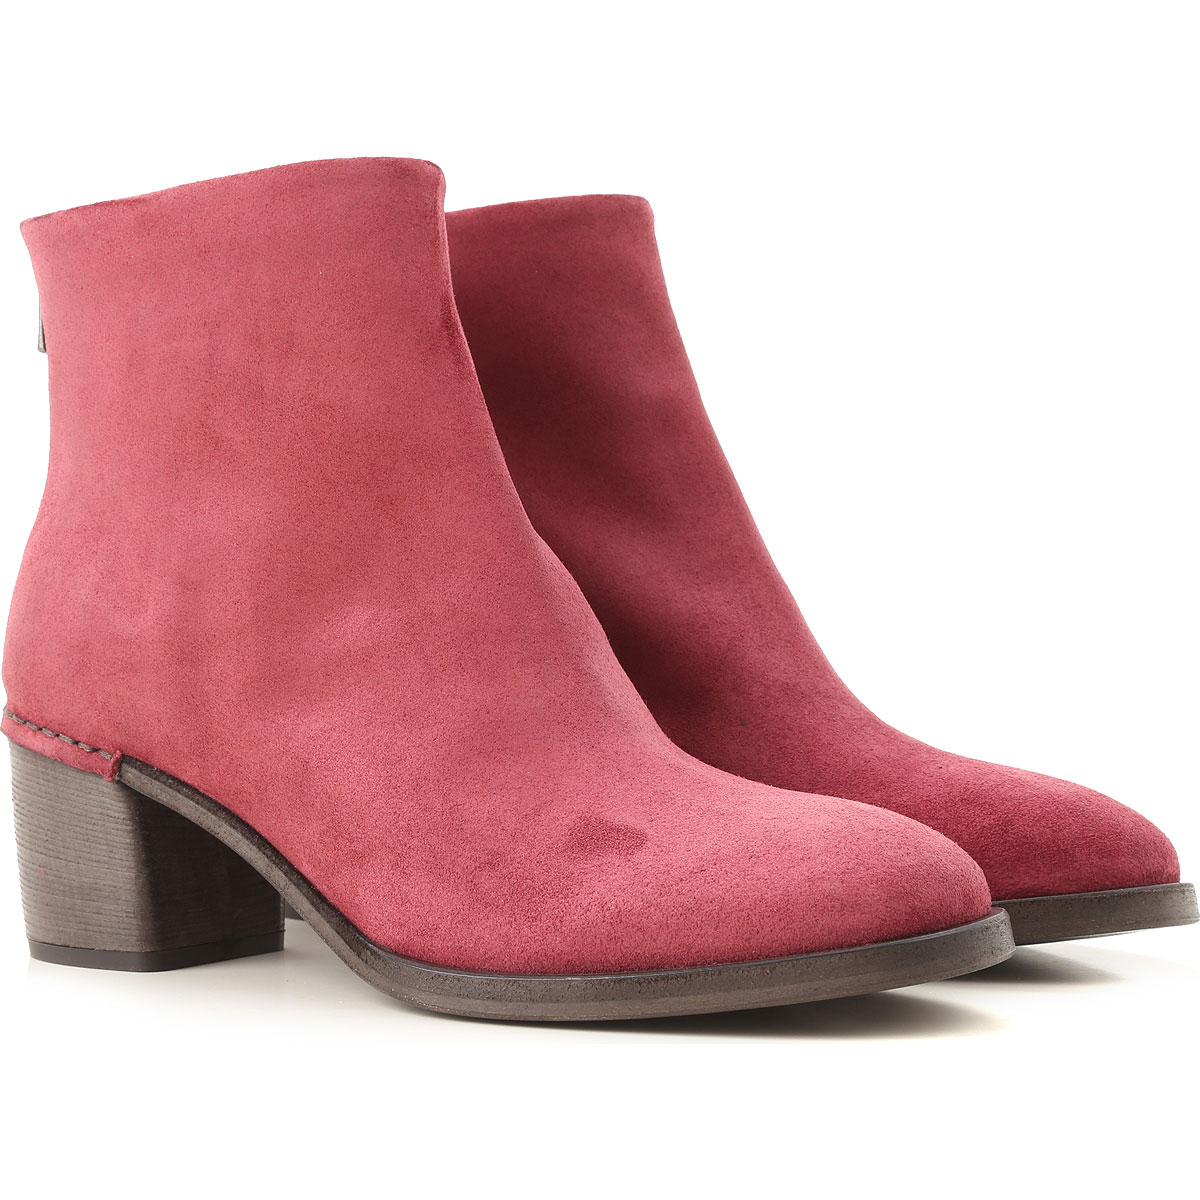 Image of Roberto Del Carlo Boots for Women, Booties, Burgundy, Suede leather, 2017, 6 7 8